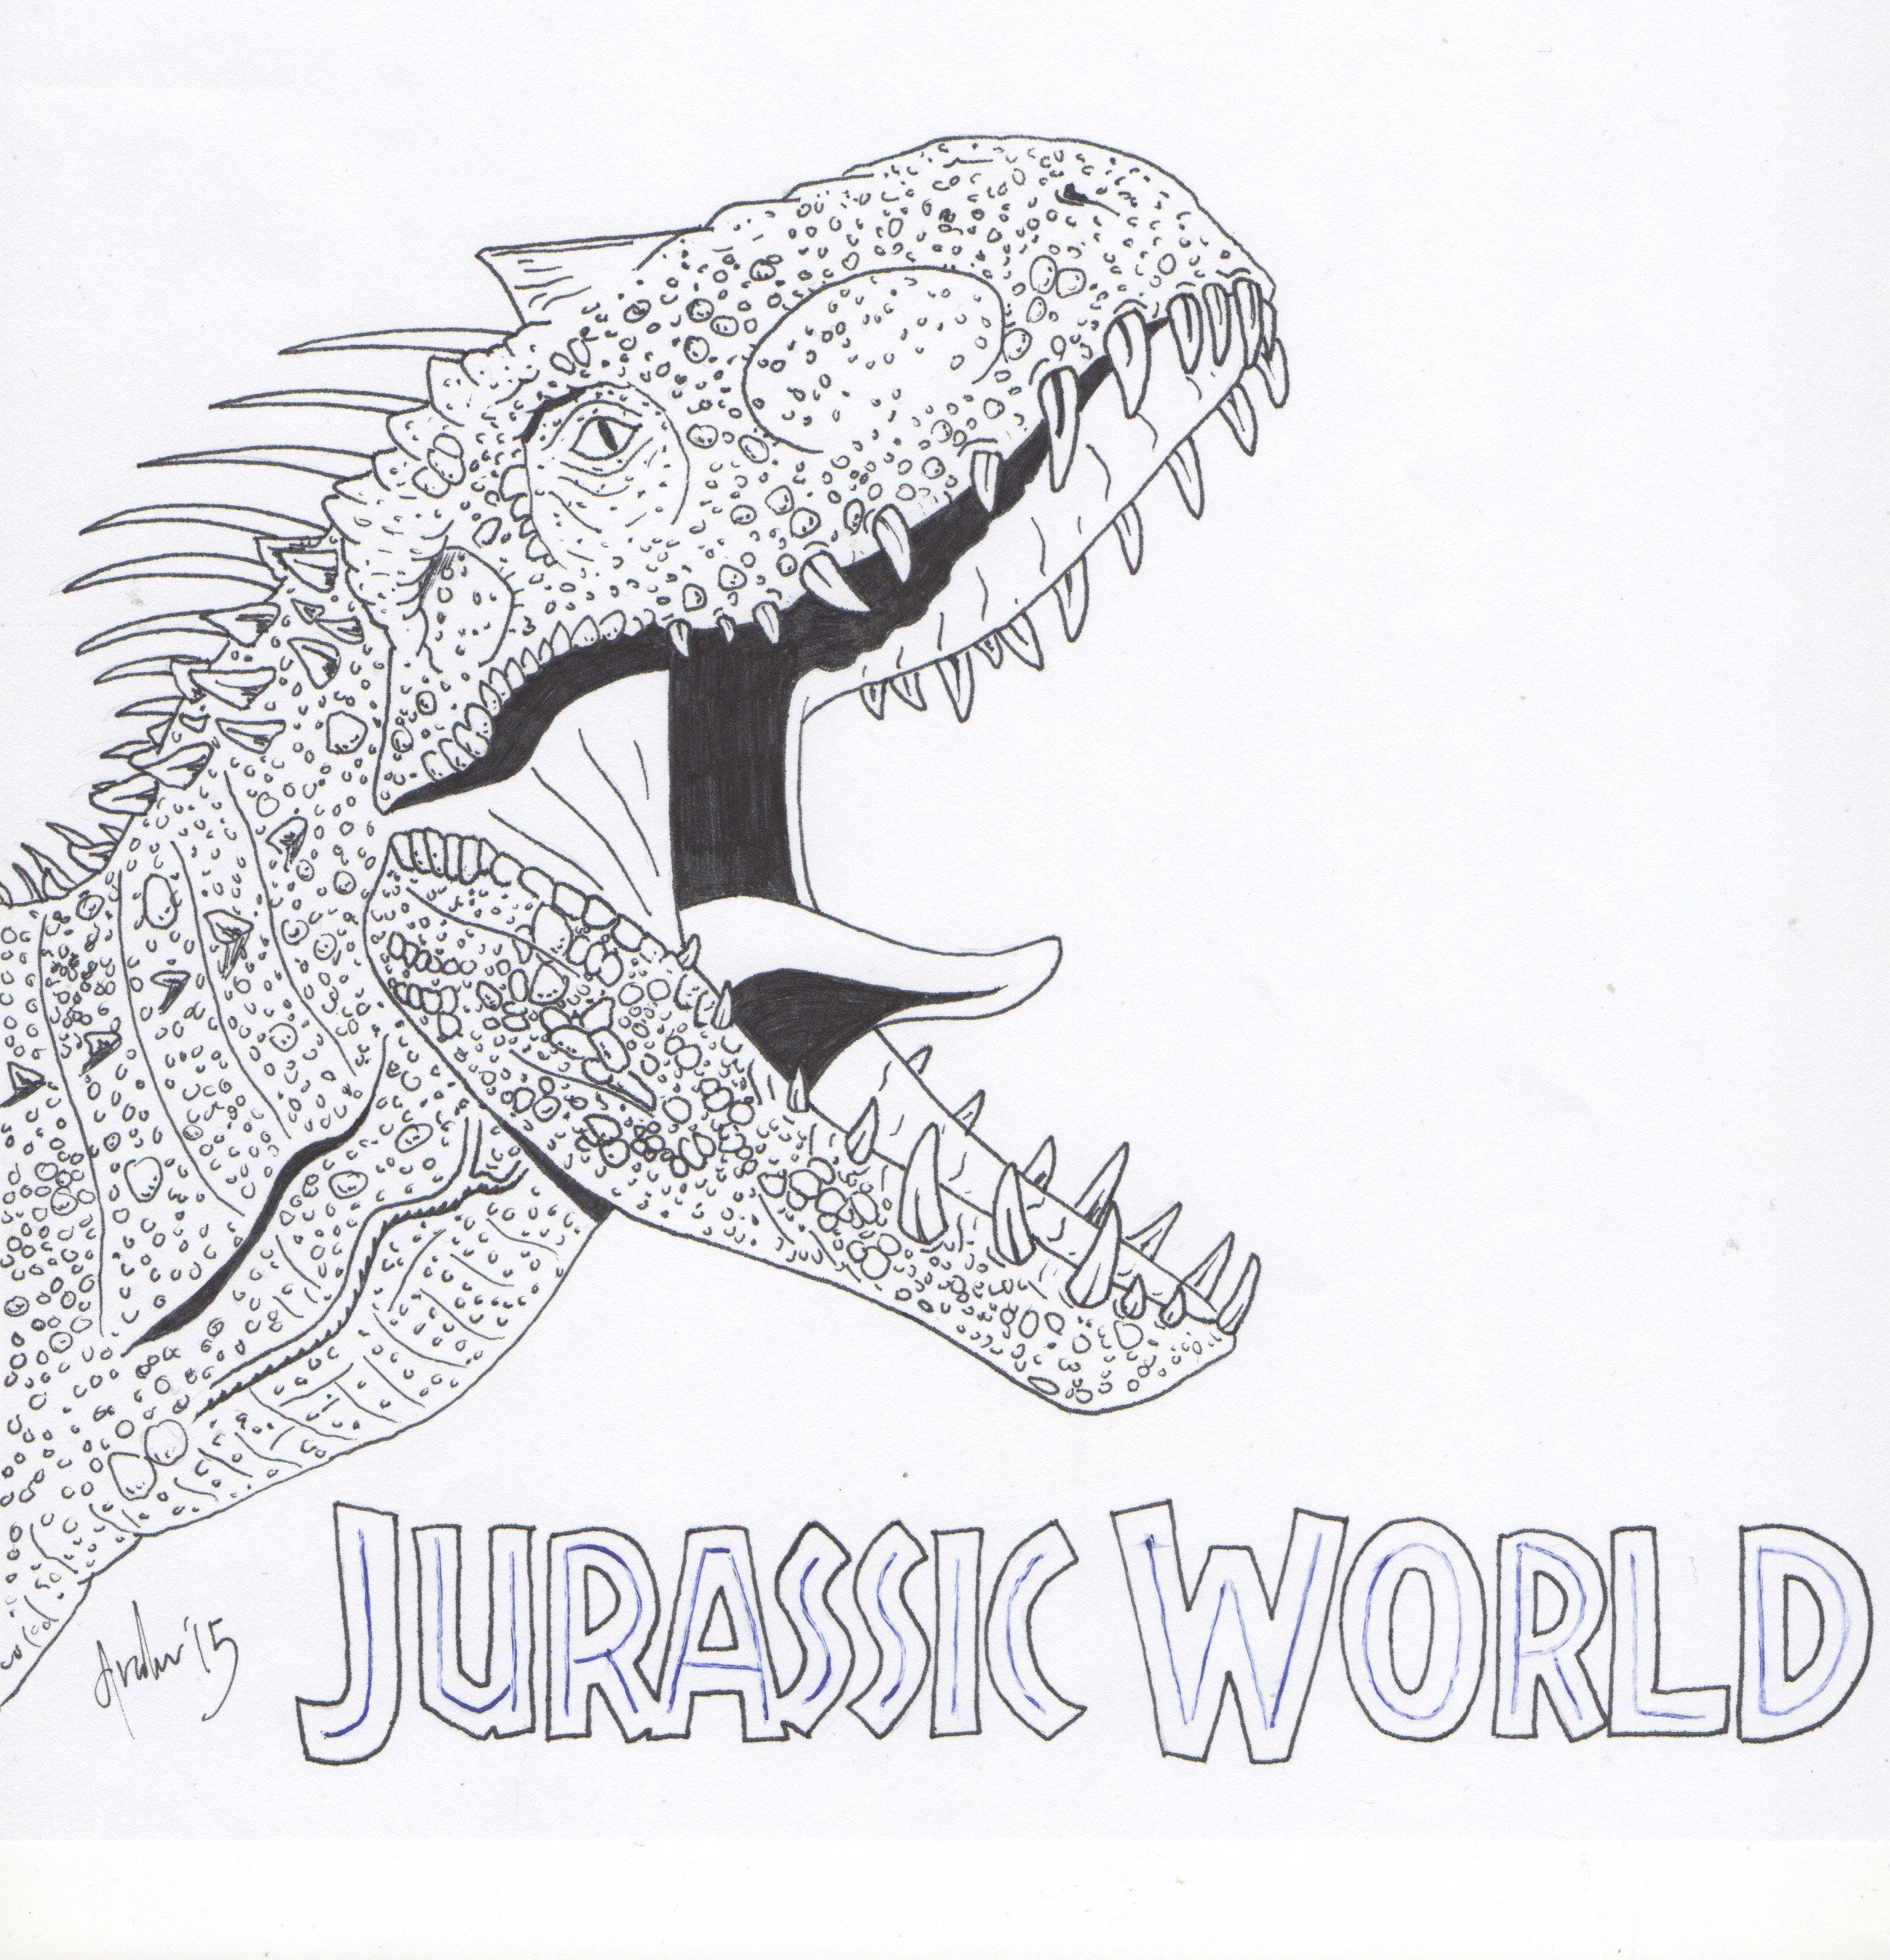 30 Fresh Jurassic World Coloring Pages In 2020 Coloring Pages